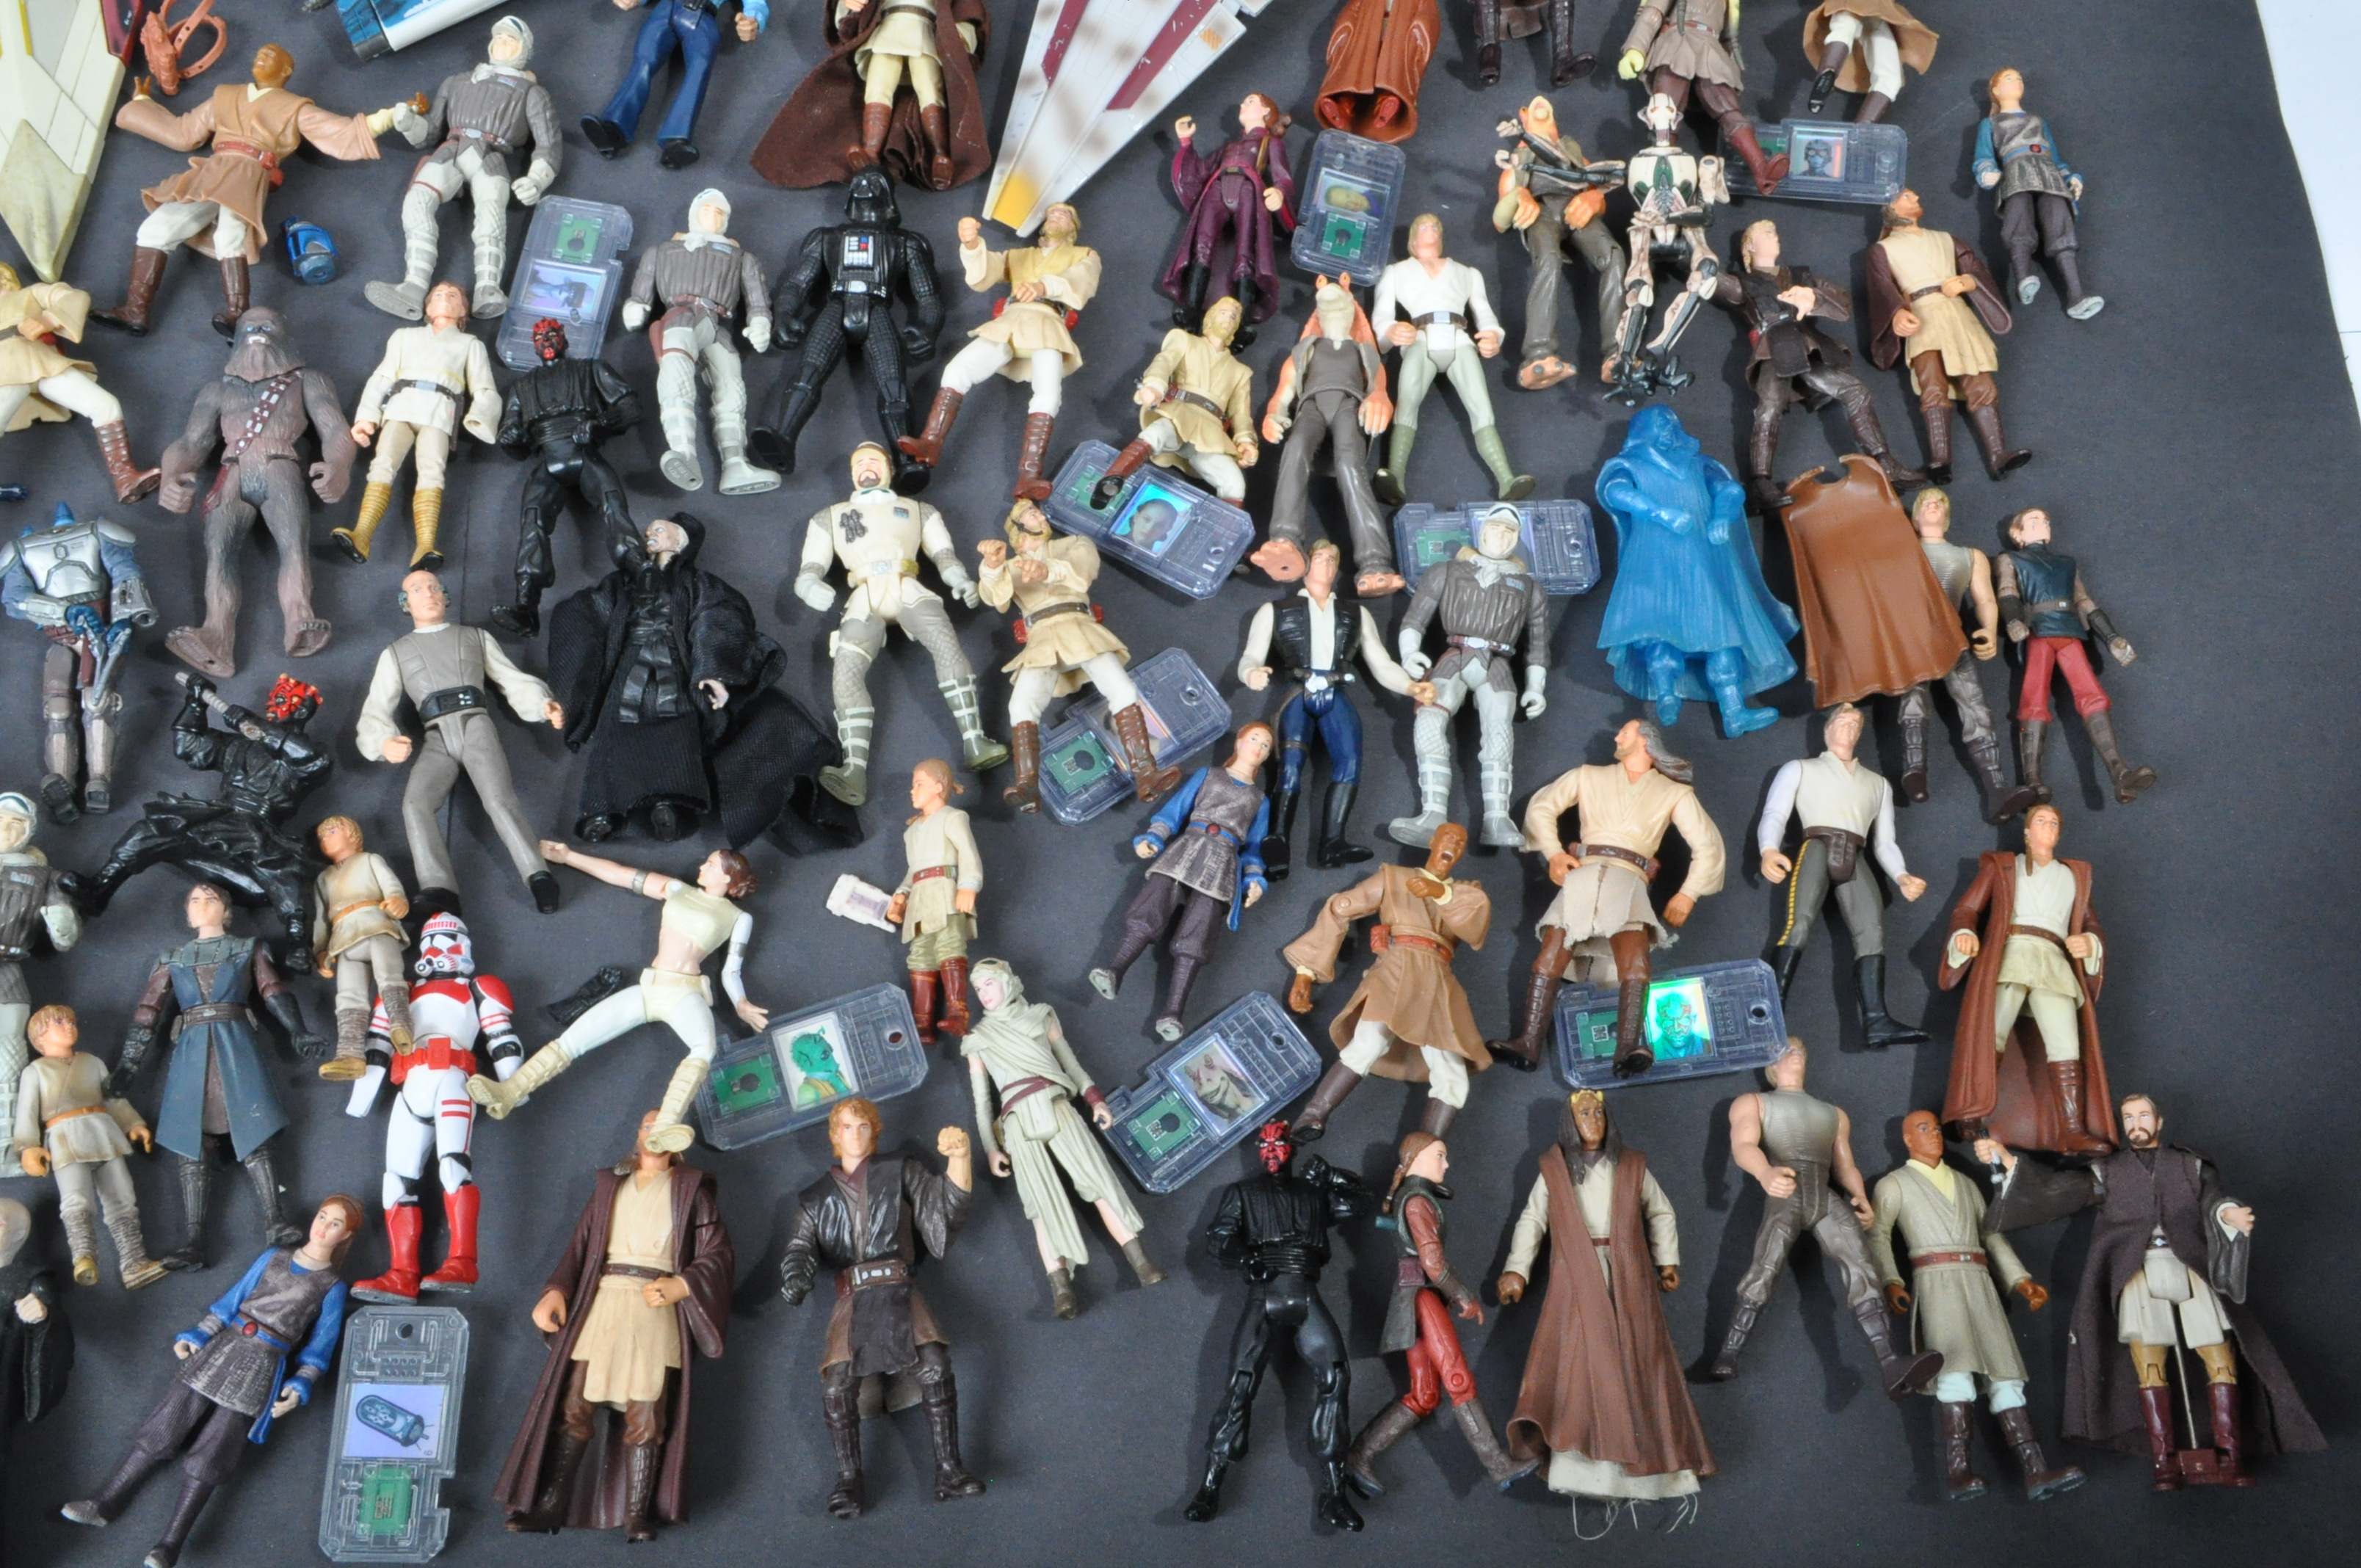 STAR WARS - LARGE COLLECTION KENNER / HASBRO CLONE WARS & OTHER FIGURES - Image 3 of 10